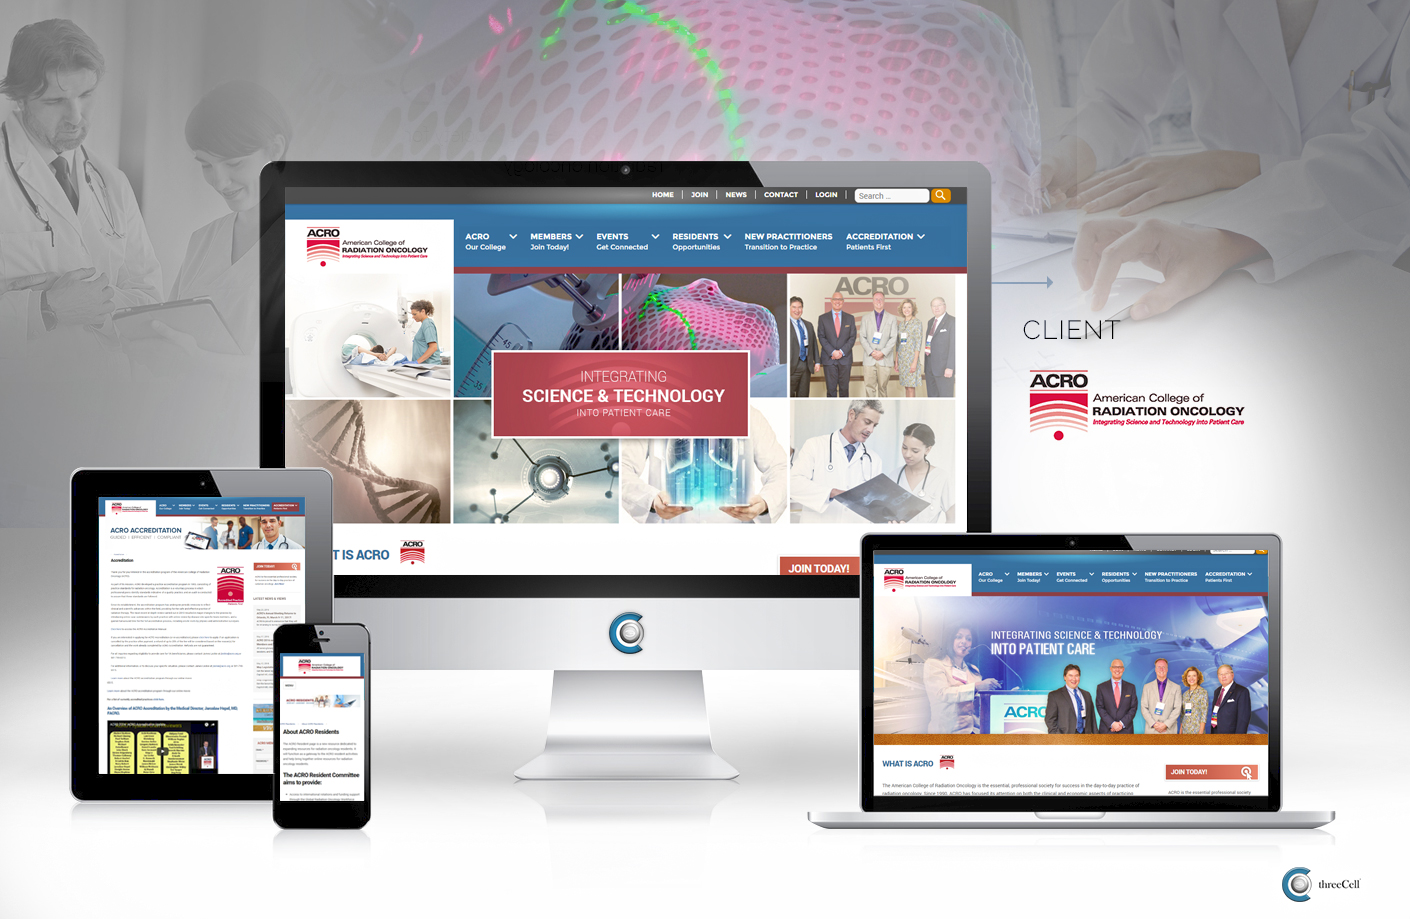 American College of Radiation Oncology (ACRO) - ThreeCell Web Design